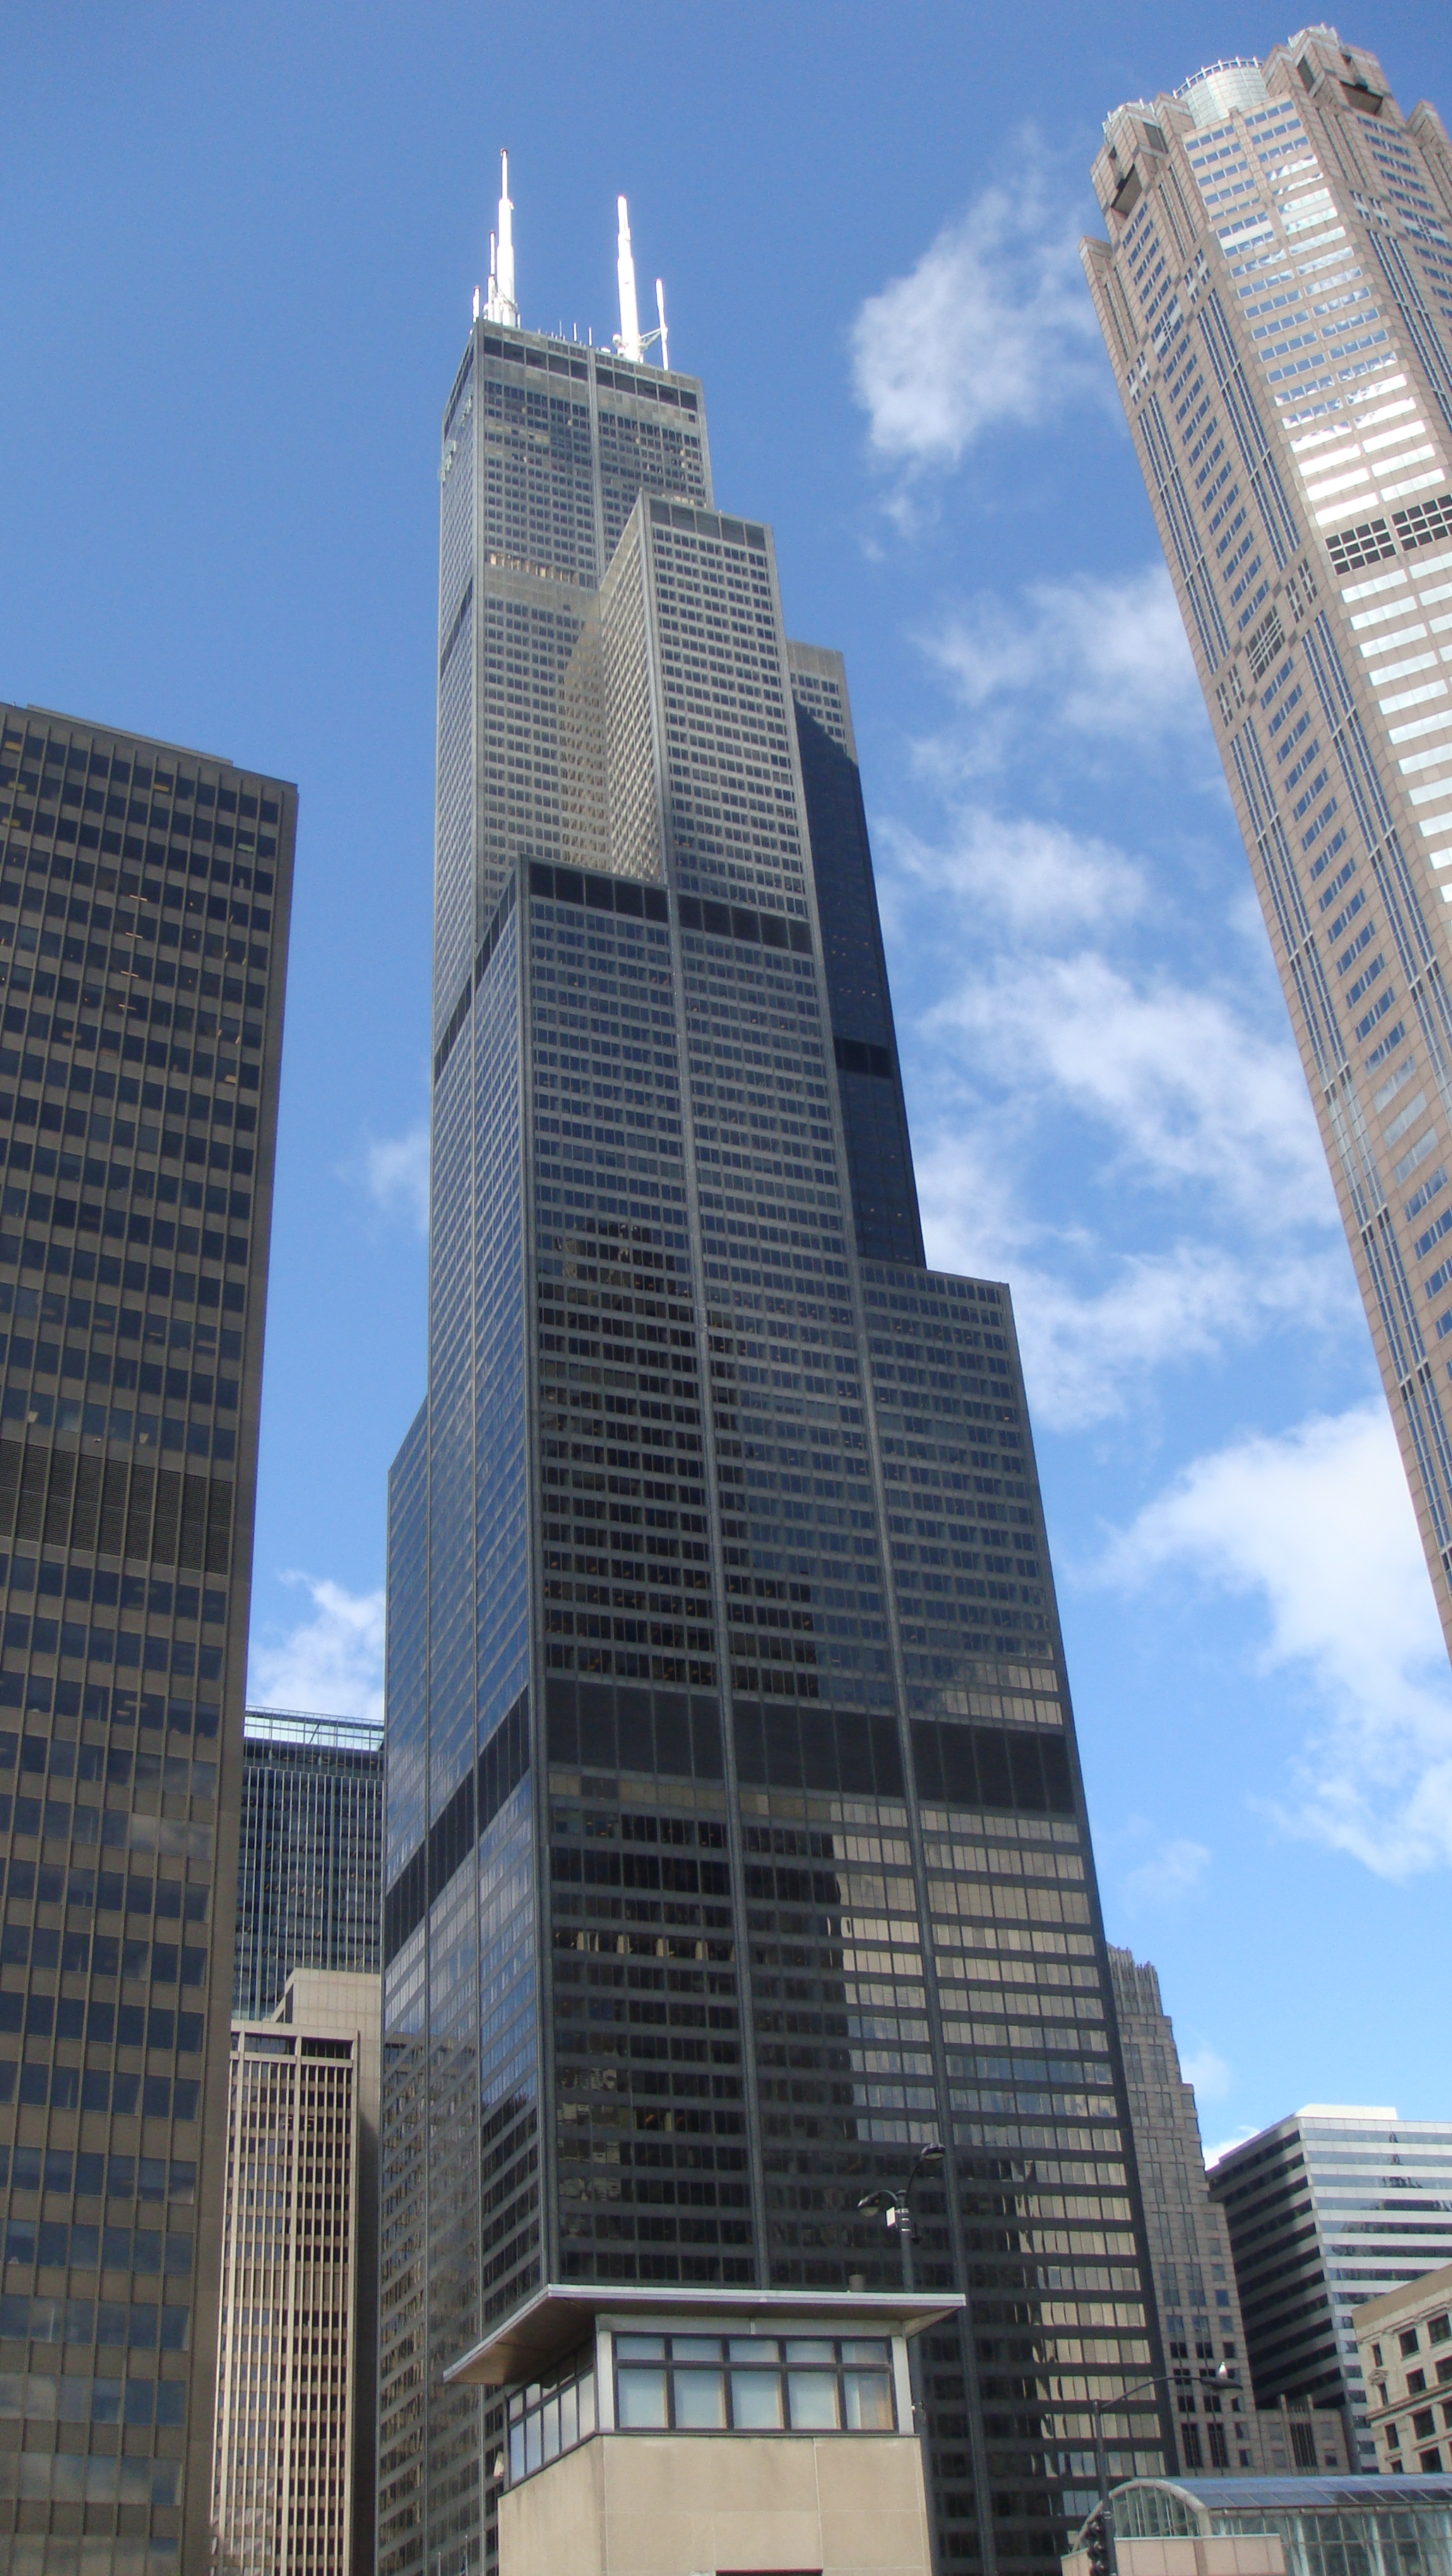 Sears Tower. Also known as the Willis Tower.